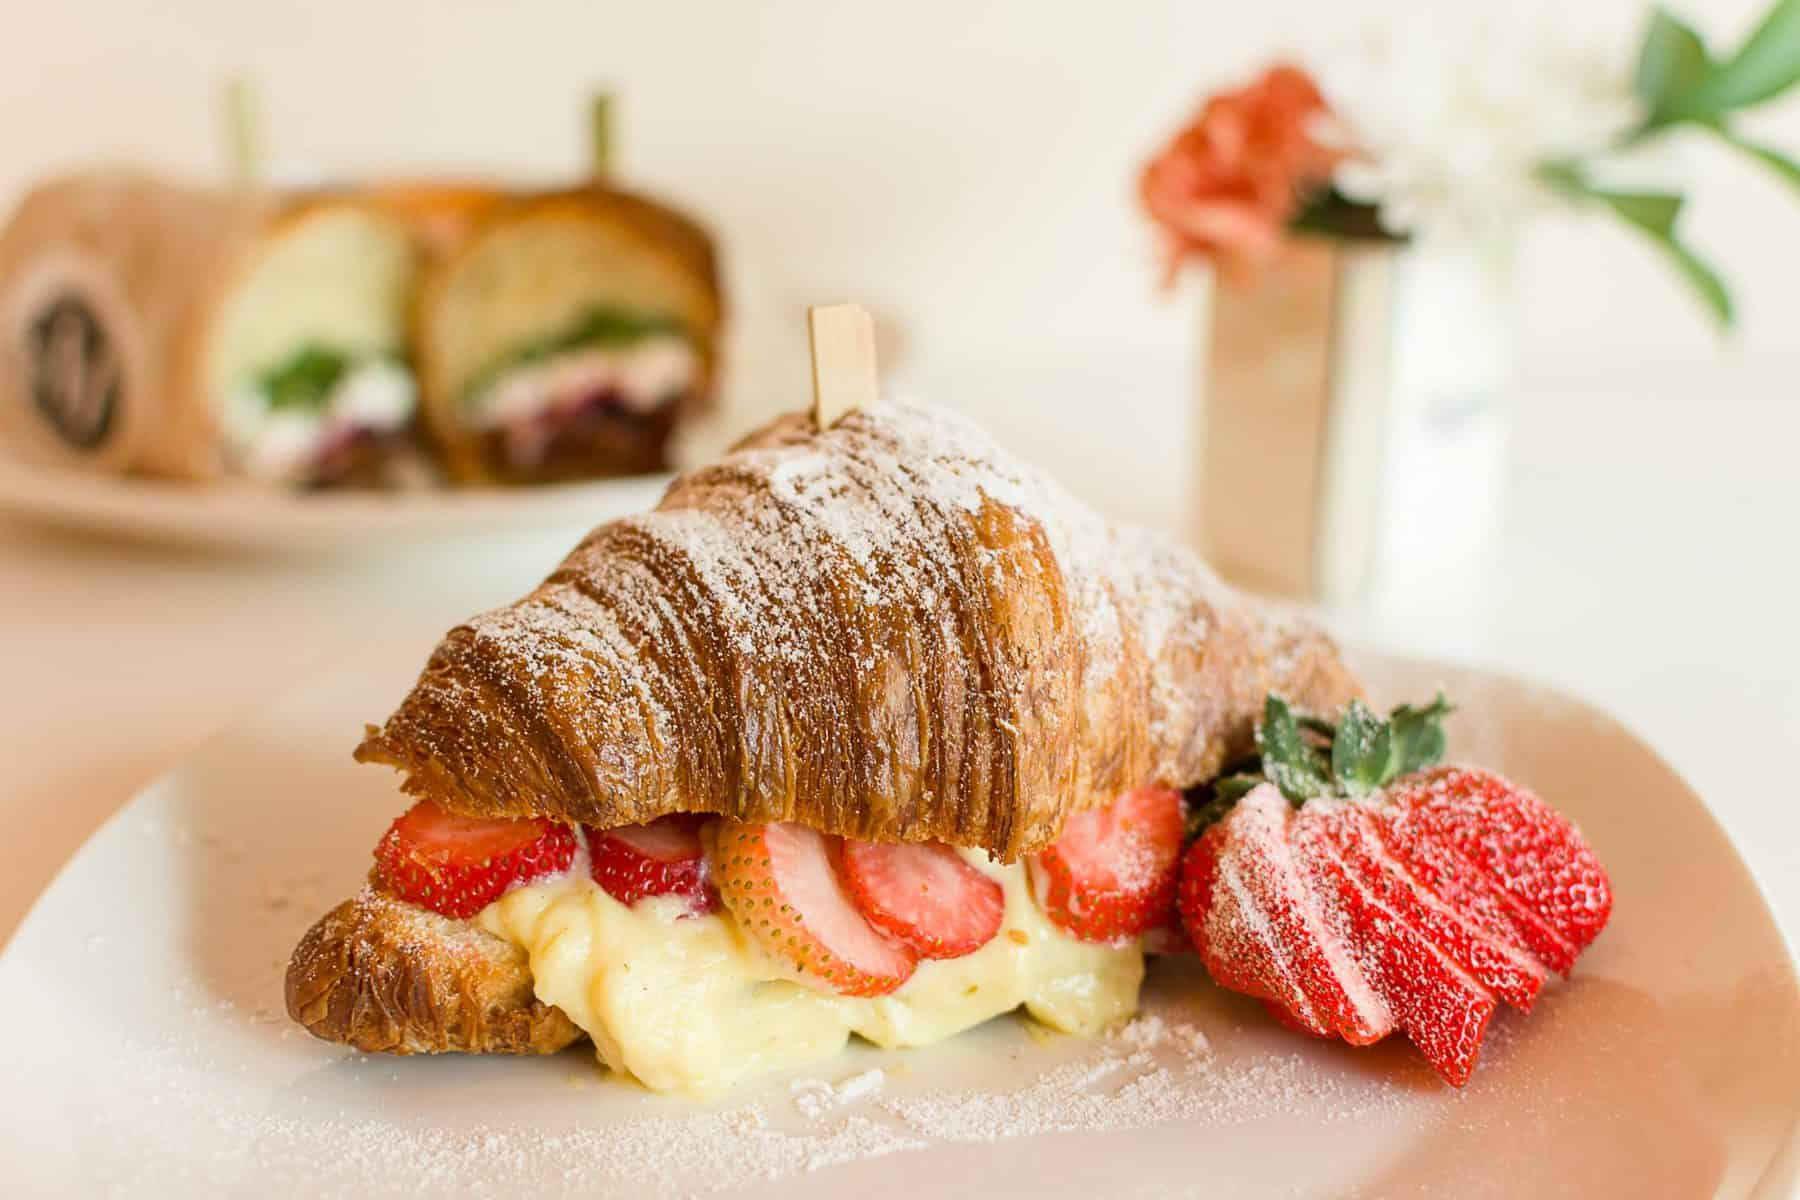 Strawberry Cream Croissant